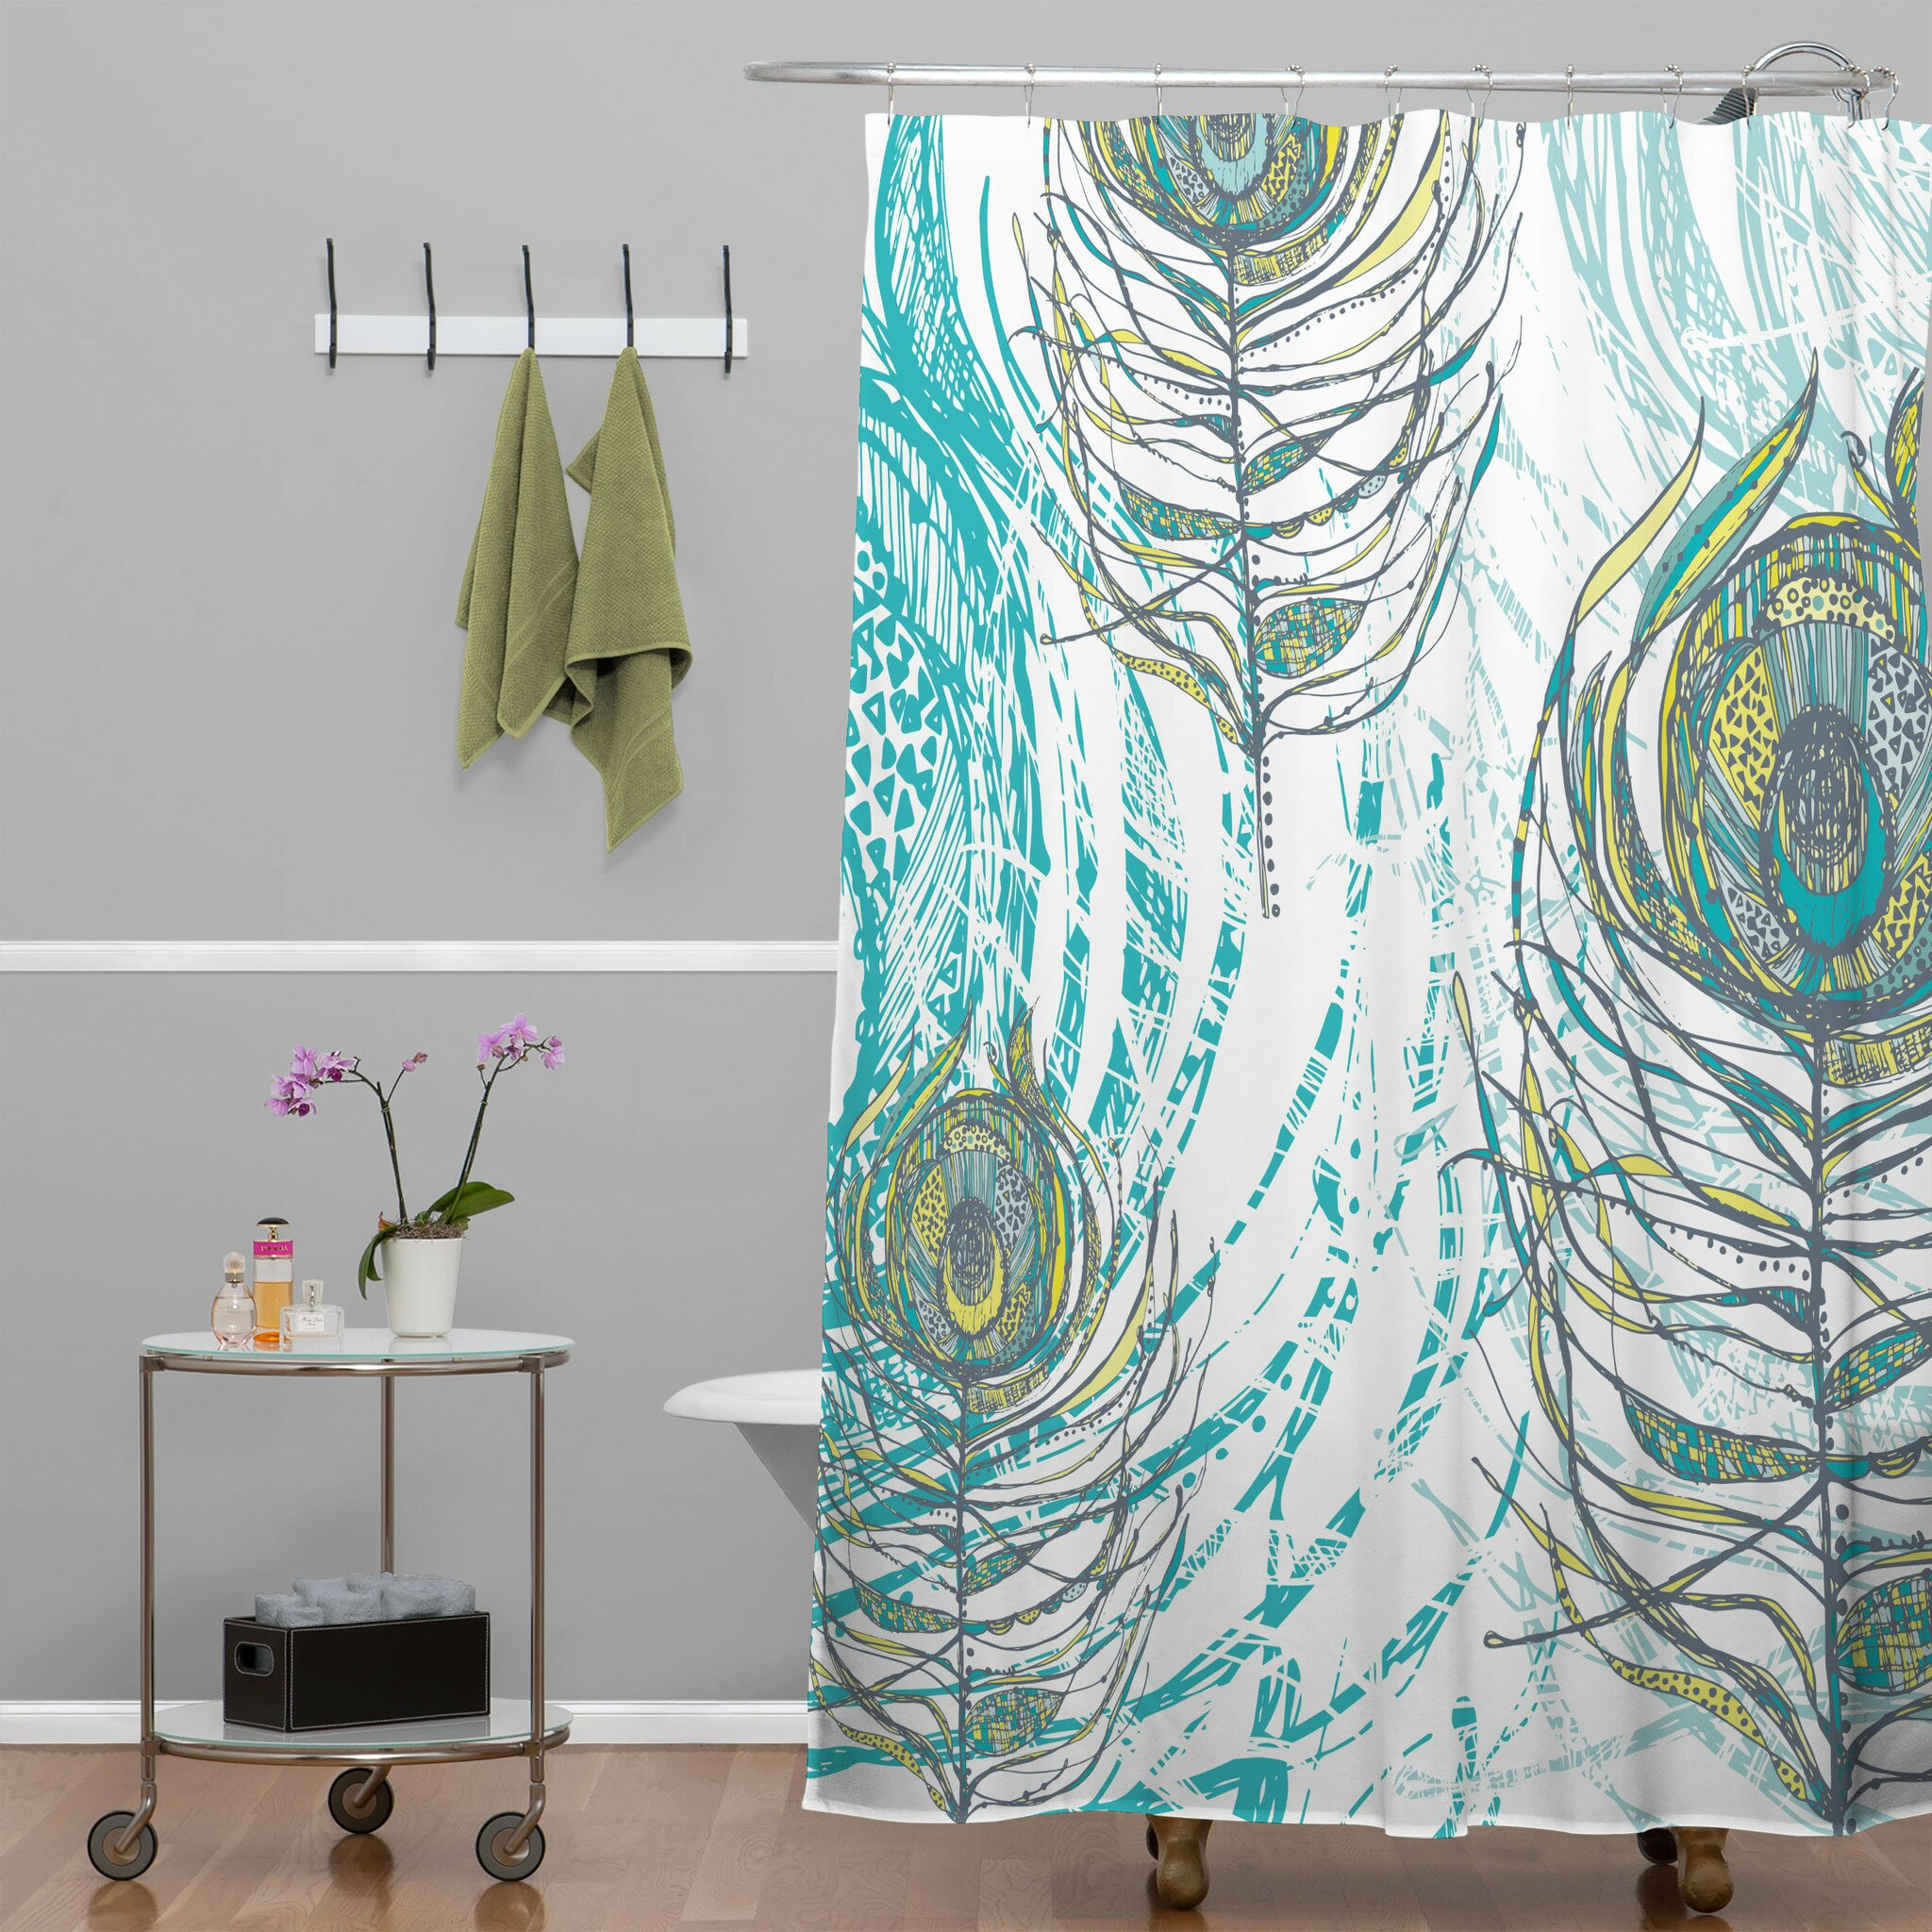 Walmart Shower Curtain for Cute Your Bathroom Decor Ideas: Neutral Shower Curtains | Walmart Shower Curtain | Shower Curtains Walmart